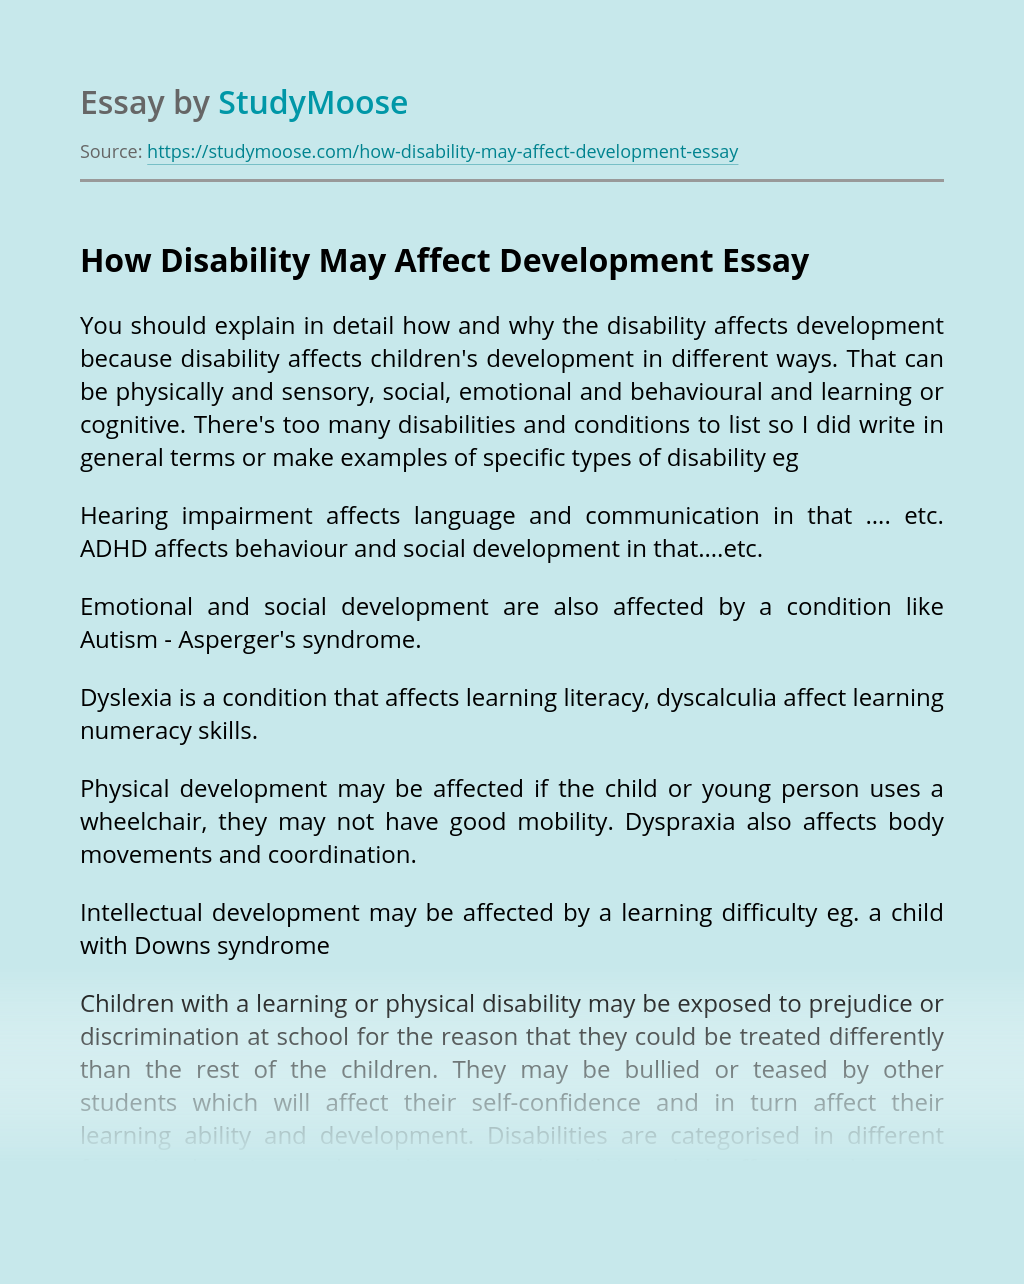 How Disability May Affect Development